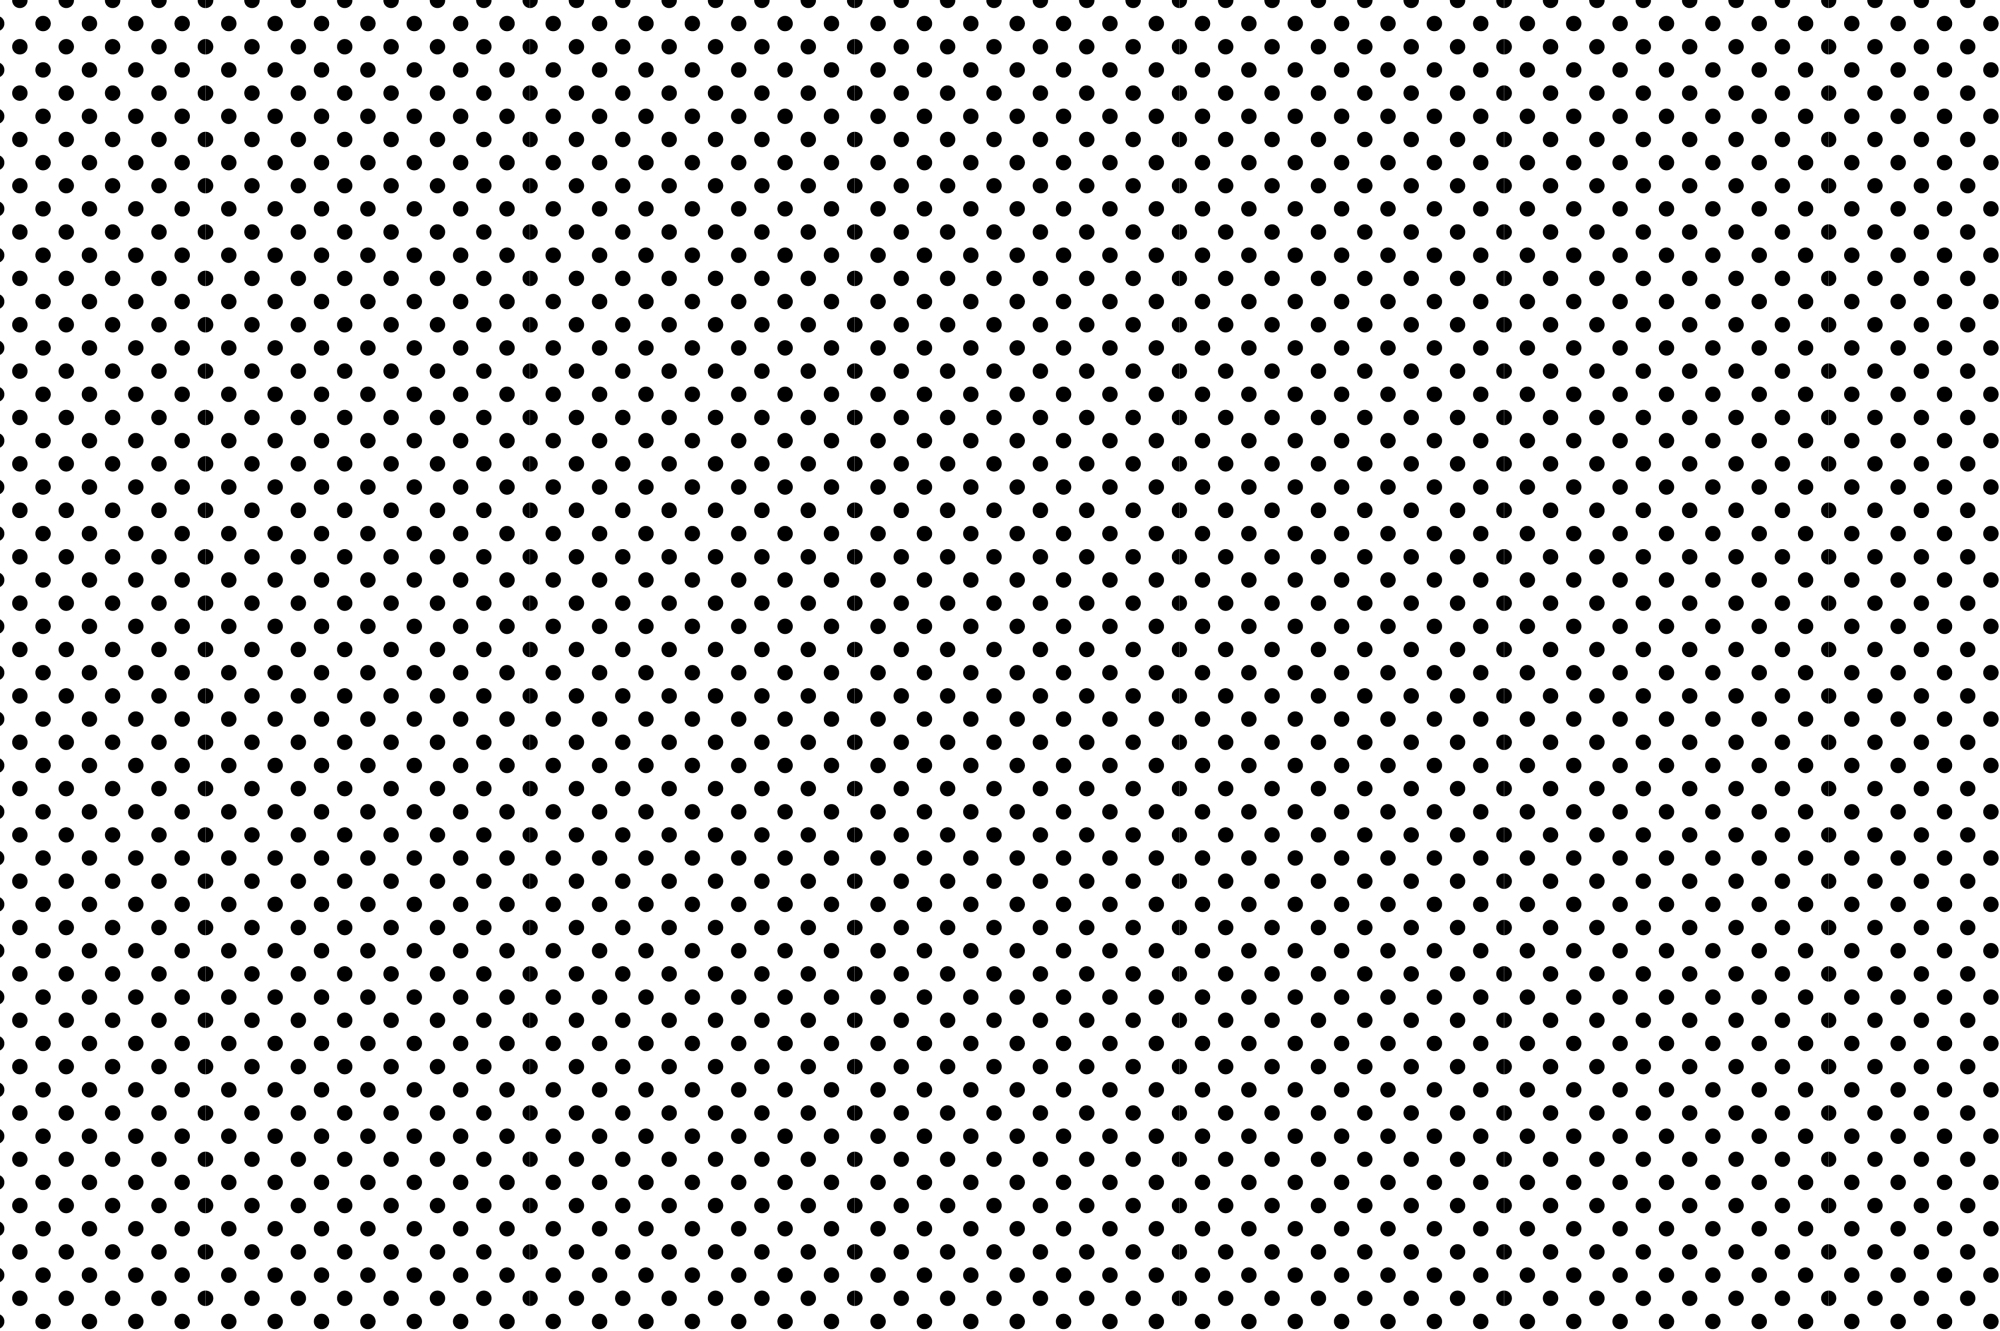 Set of dotted seamless patterns. example image 22